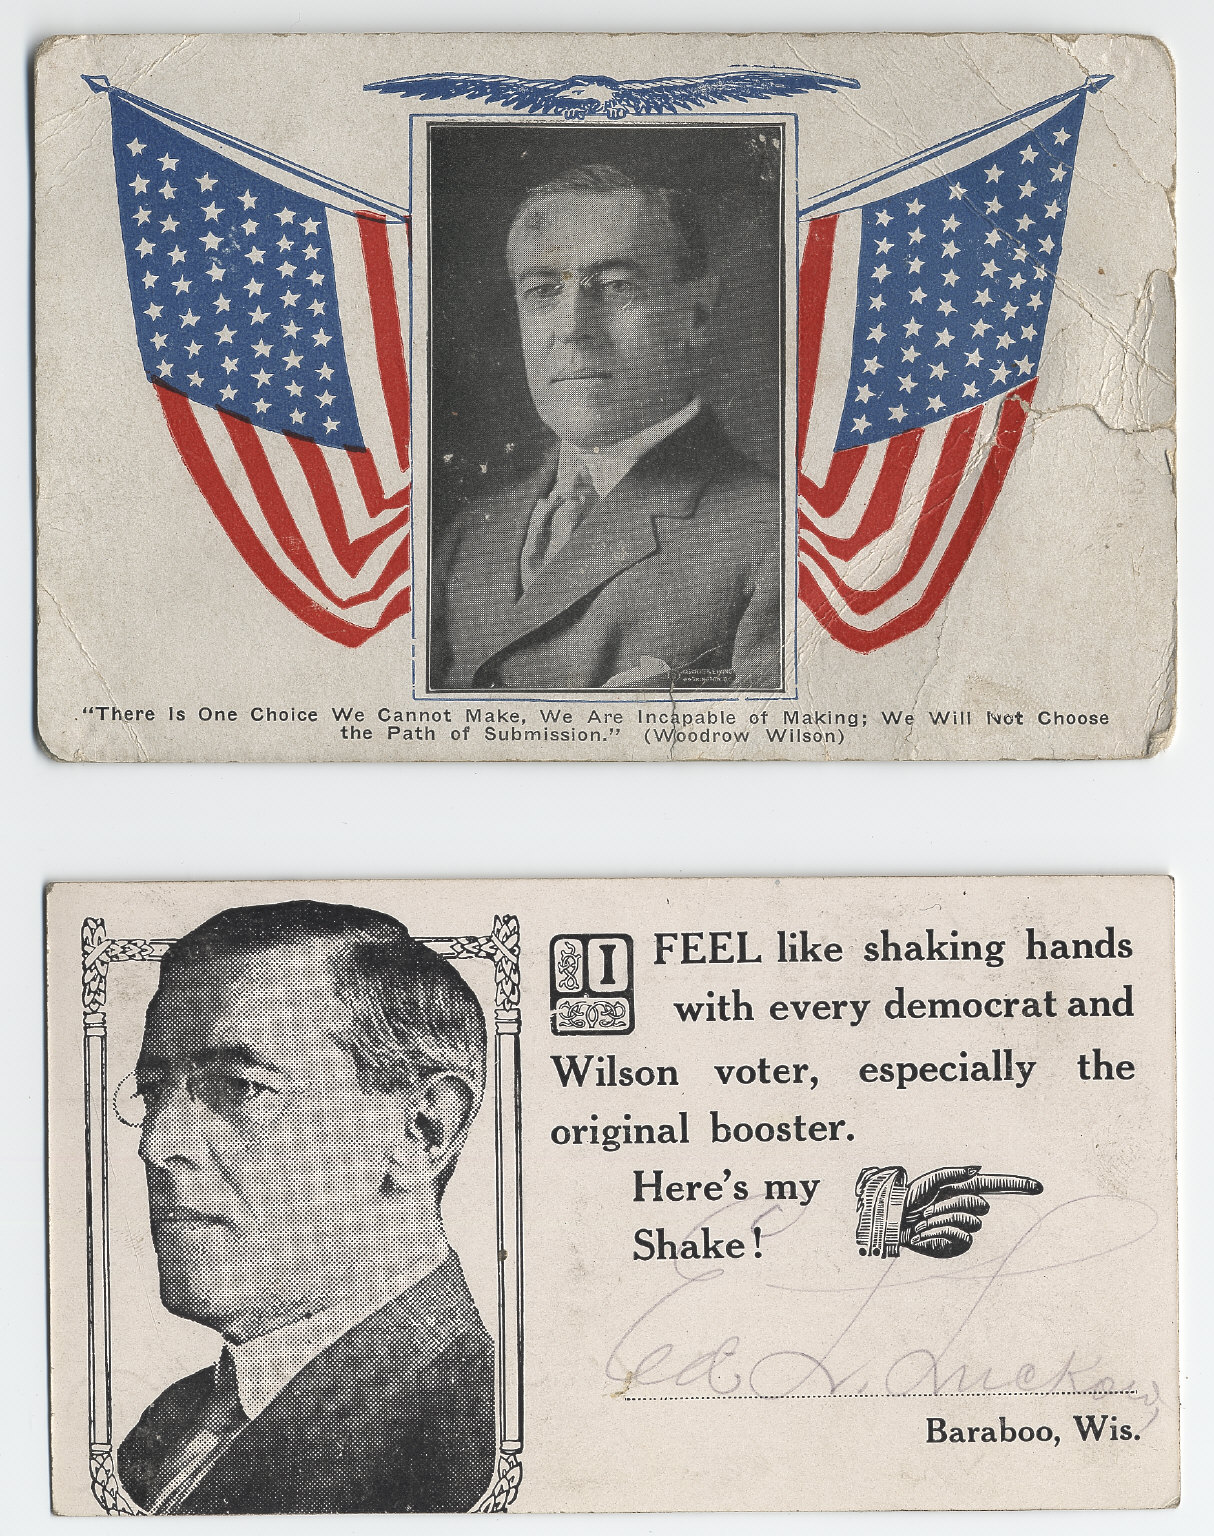 Wilson Portrait Postcards, 1912-1916